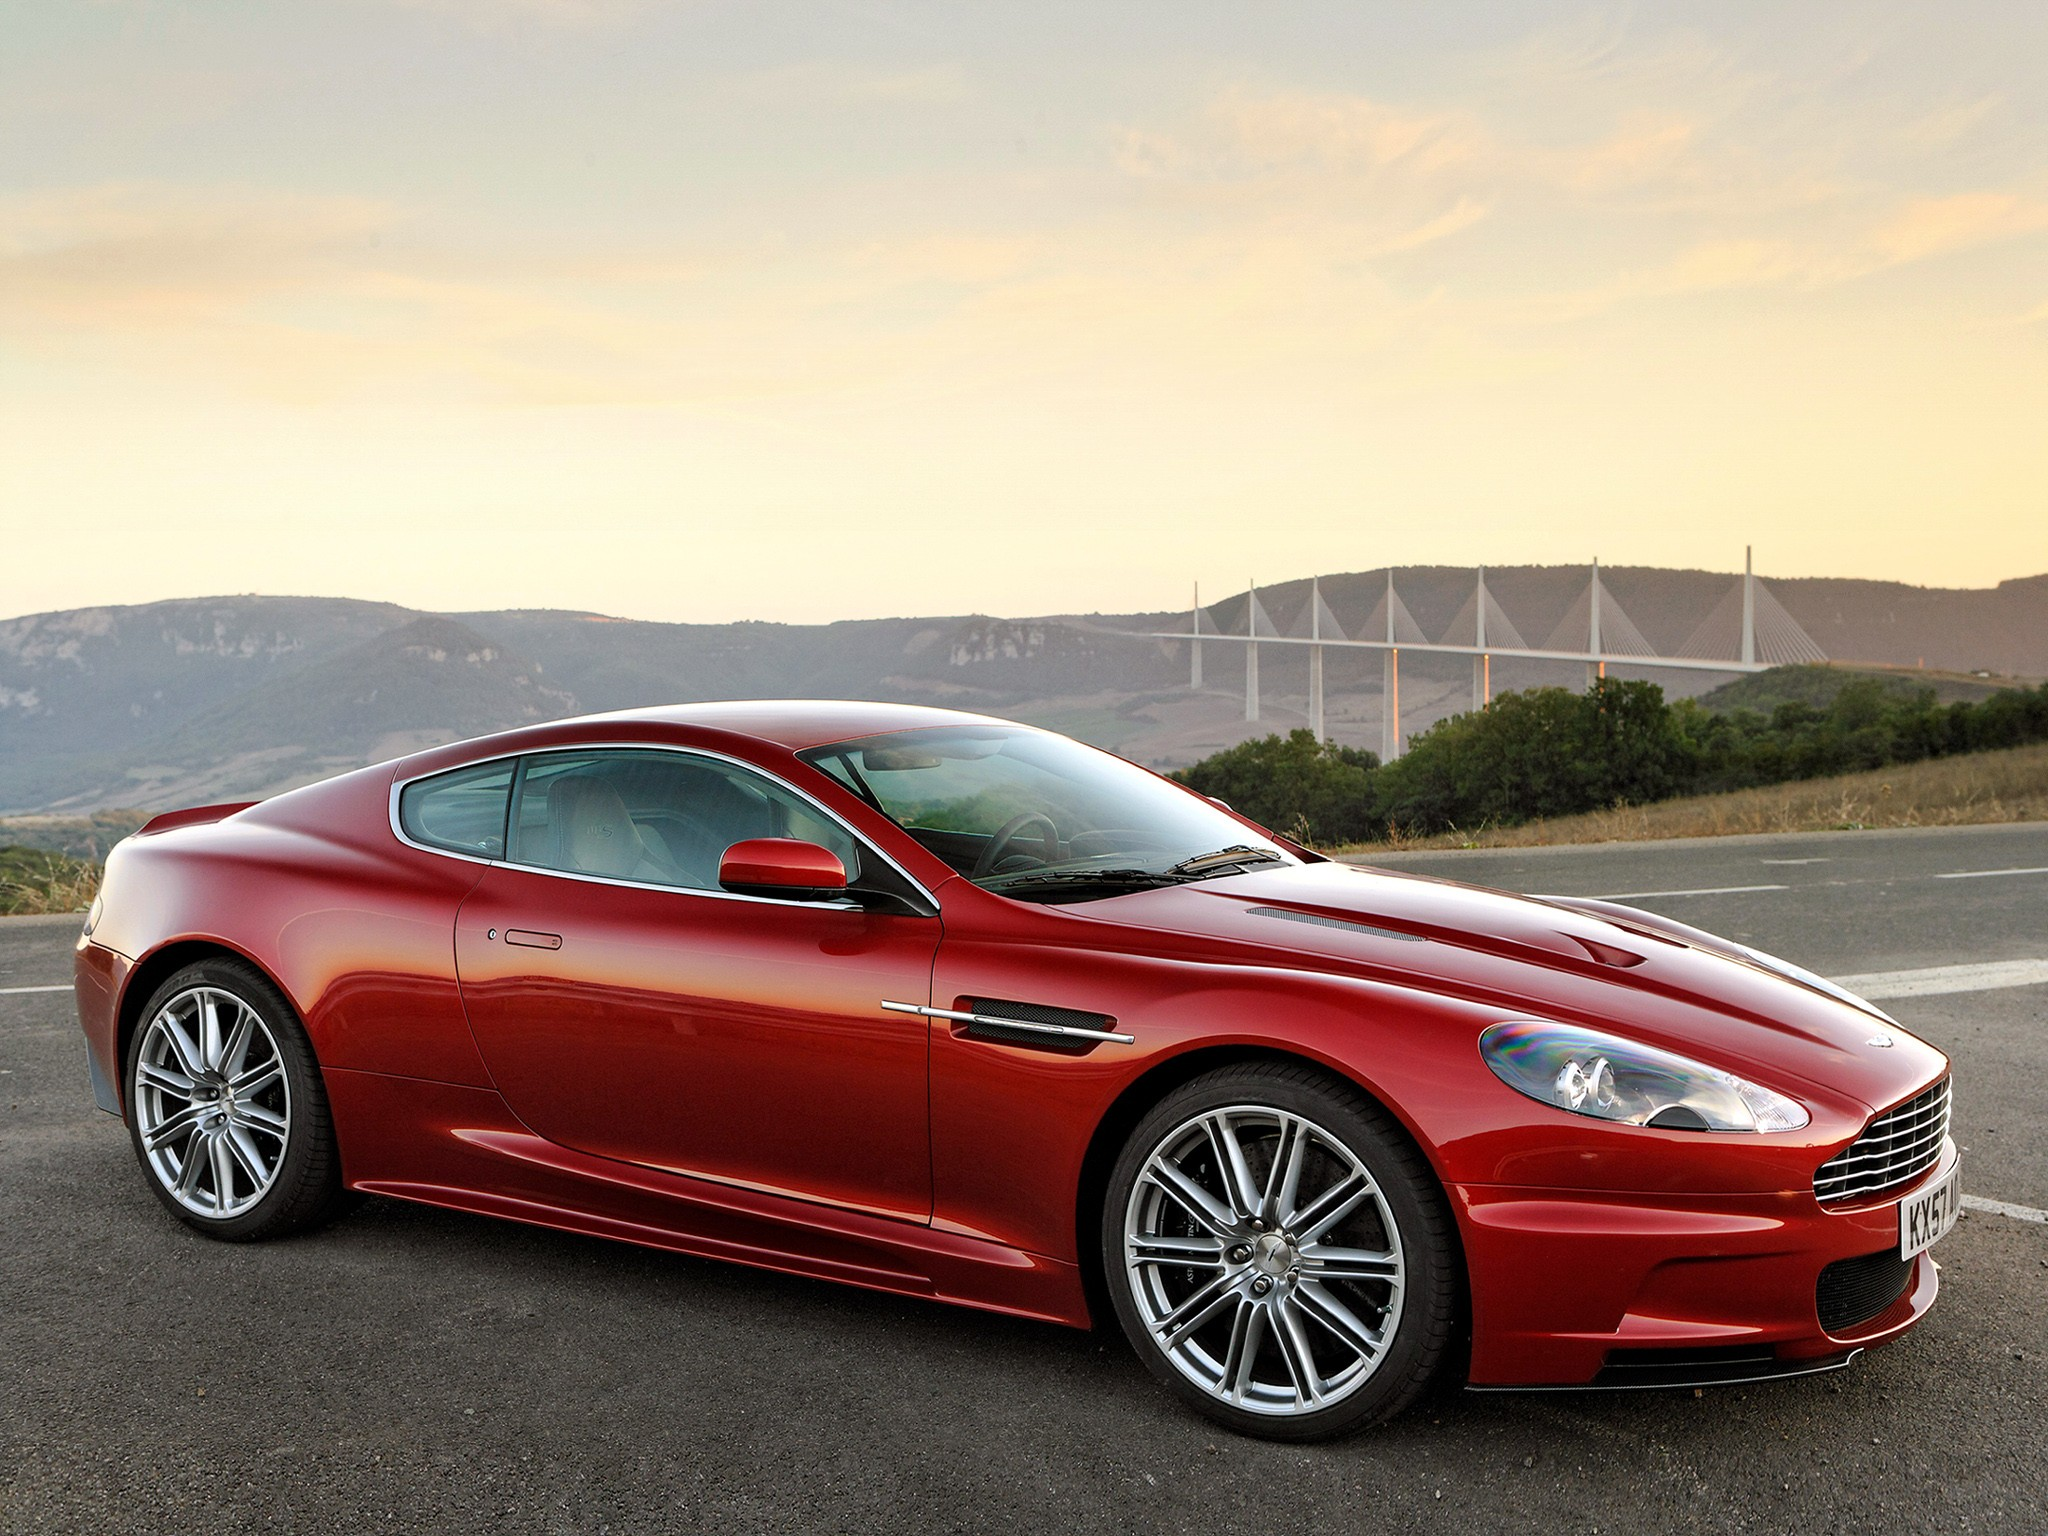 aston martin db9 or v8 vantage html with Aston Martin Dbs 2008 on Aston Martin Dbs 2008 additionally Aston Martin One 77 Wallpaper Black 1 together with Photos also Rubber Button Cover likewise 43908.